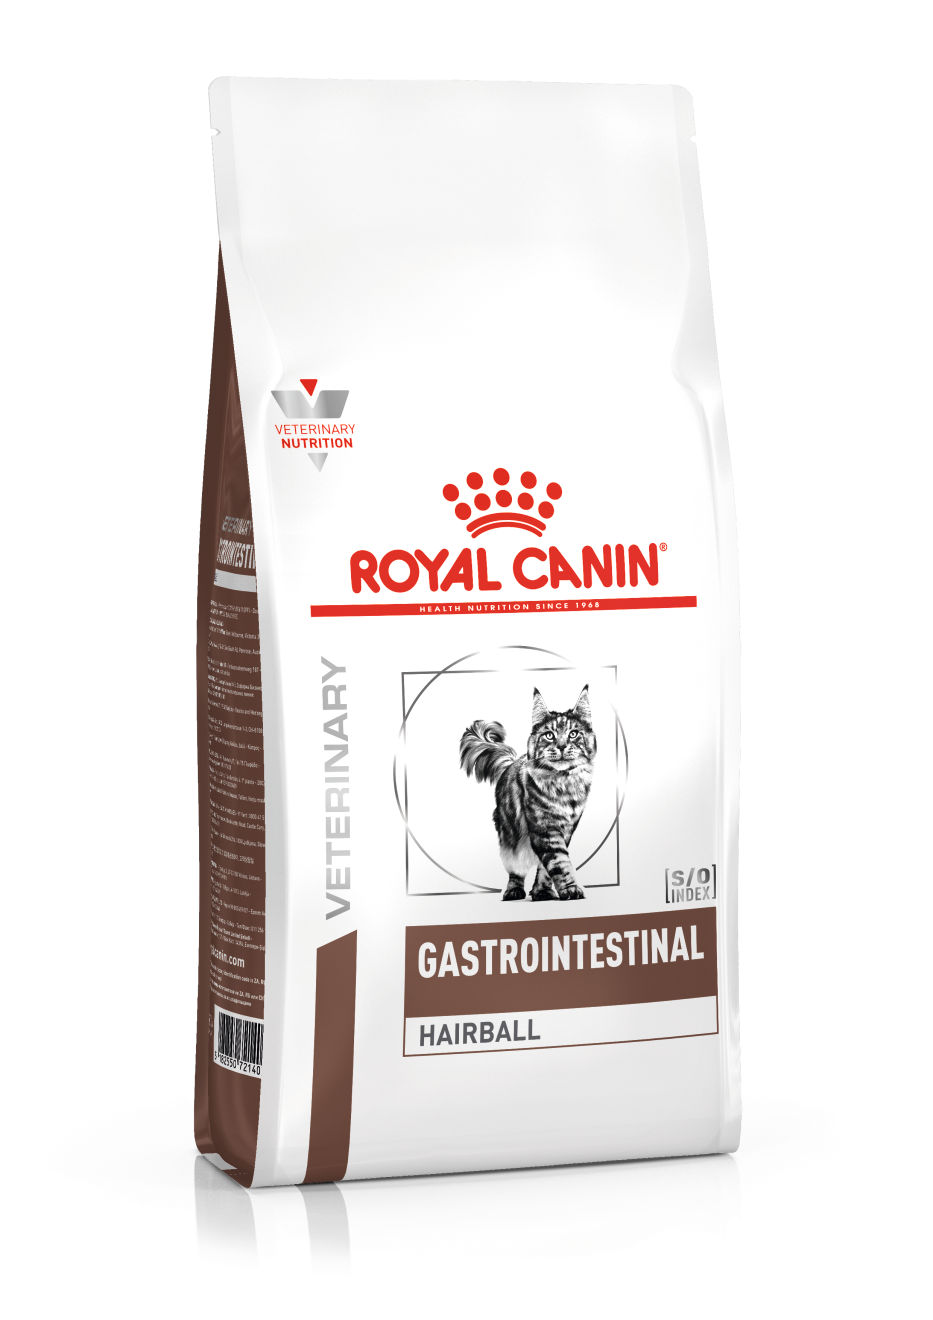 Royal Canin Gastrointestinal Hairball